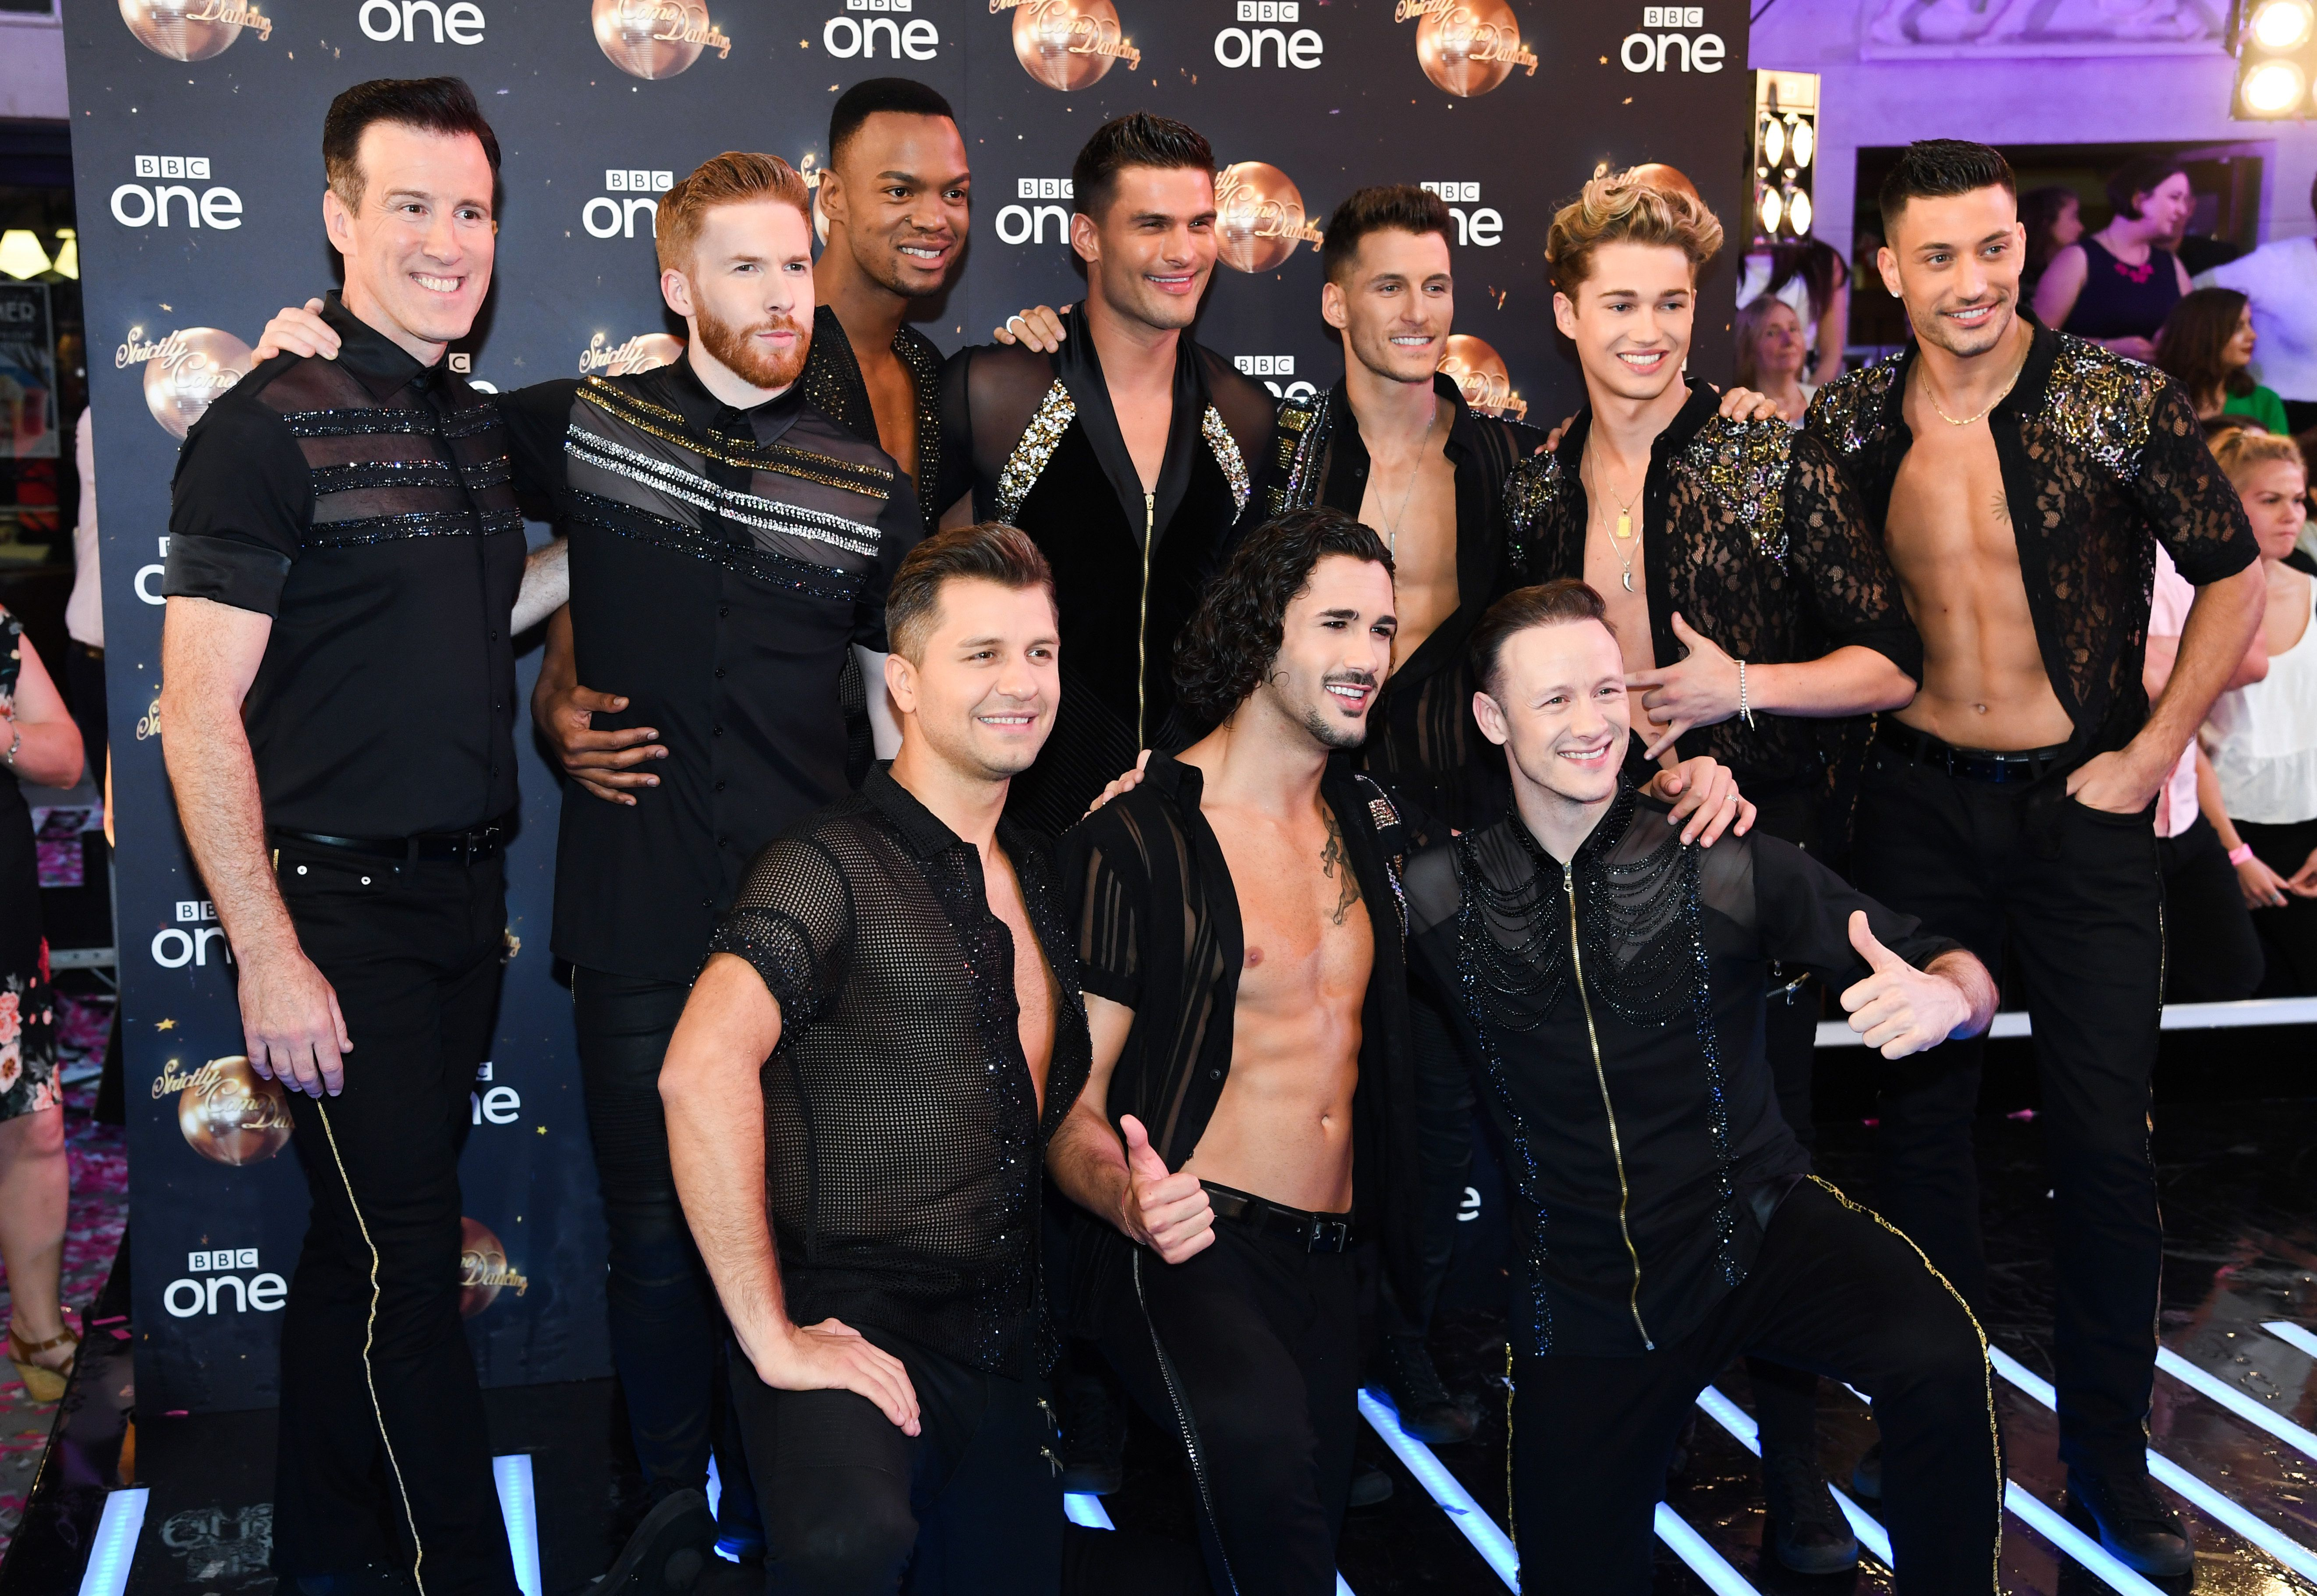 'Strictly' To Feature Same-Sex Professional Dancer Pairings On New Series